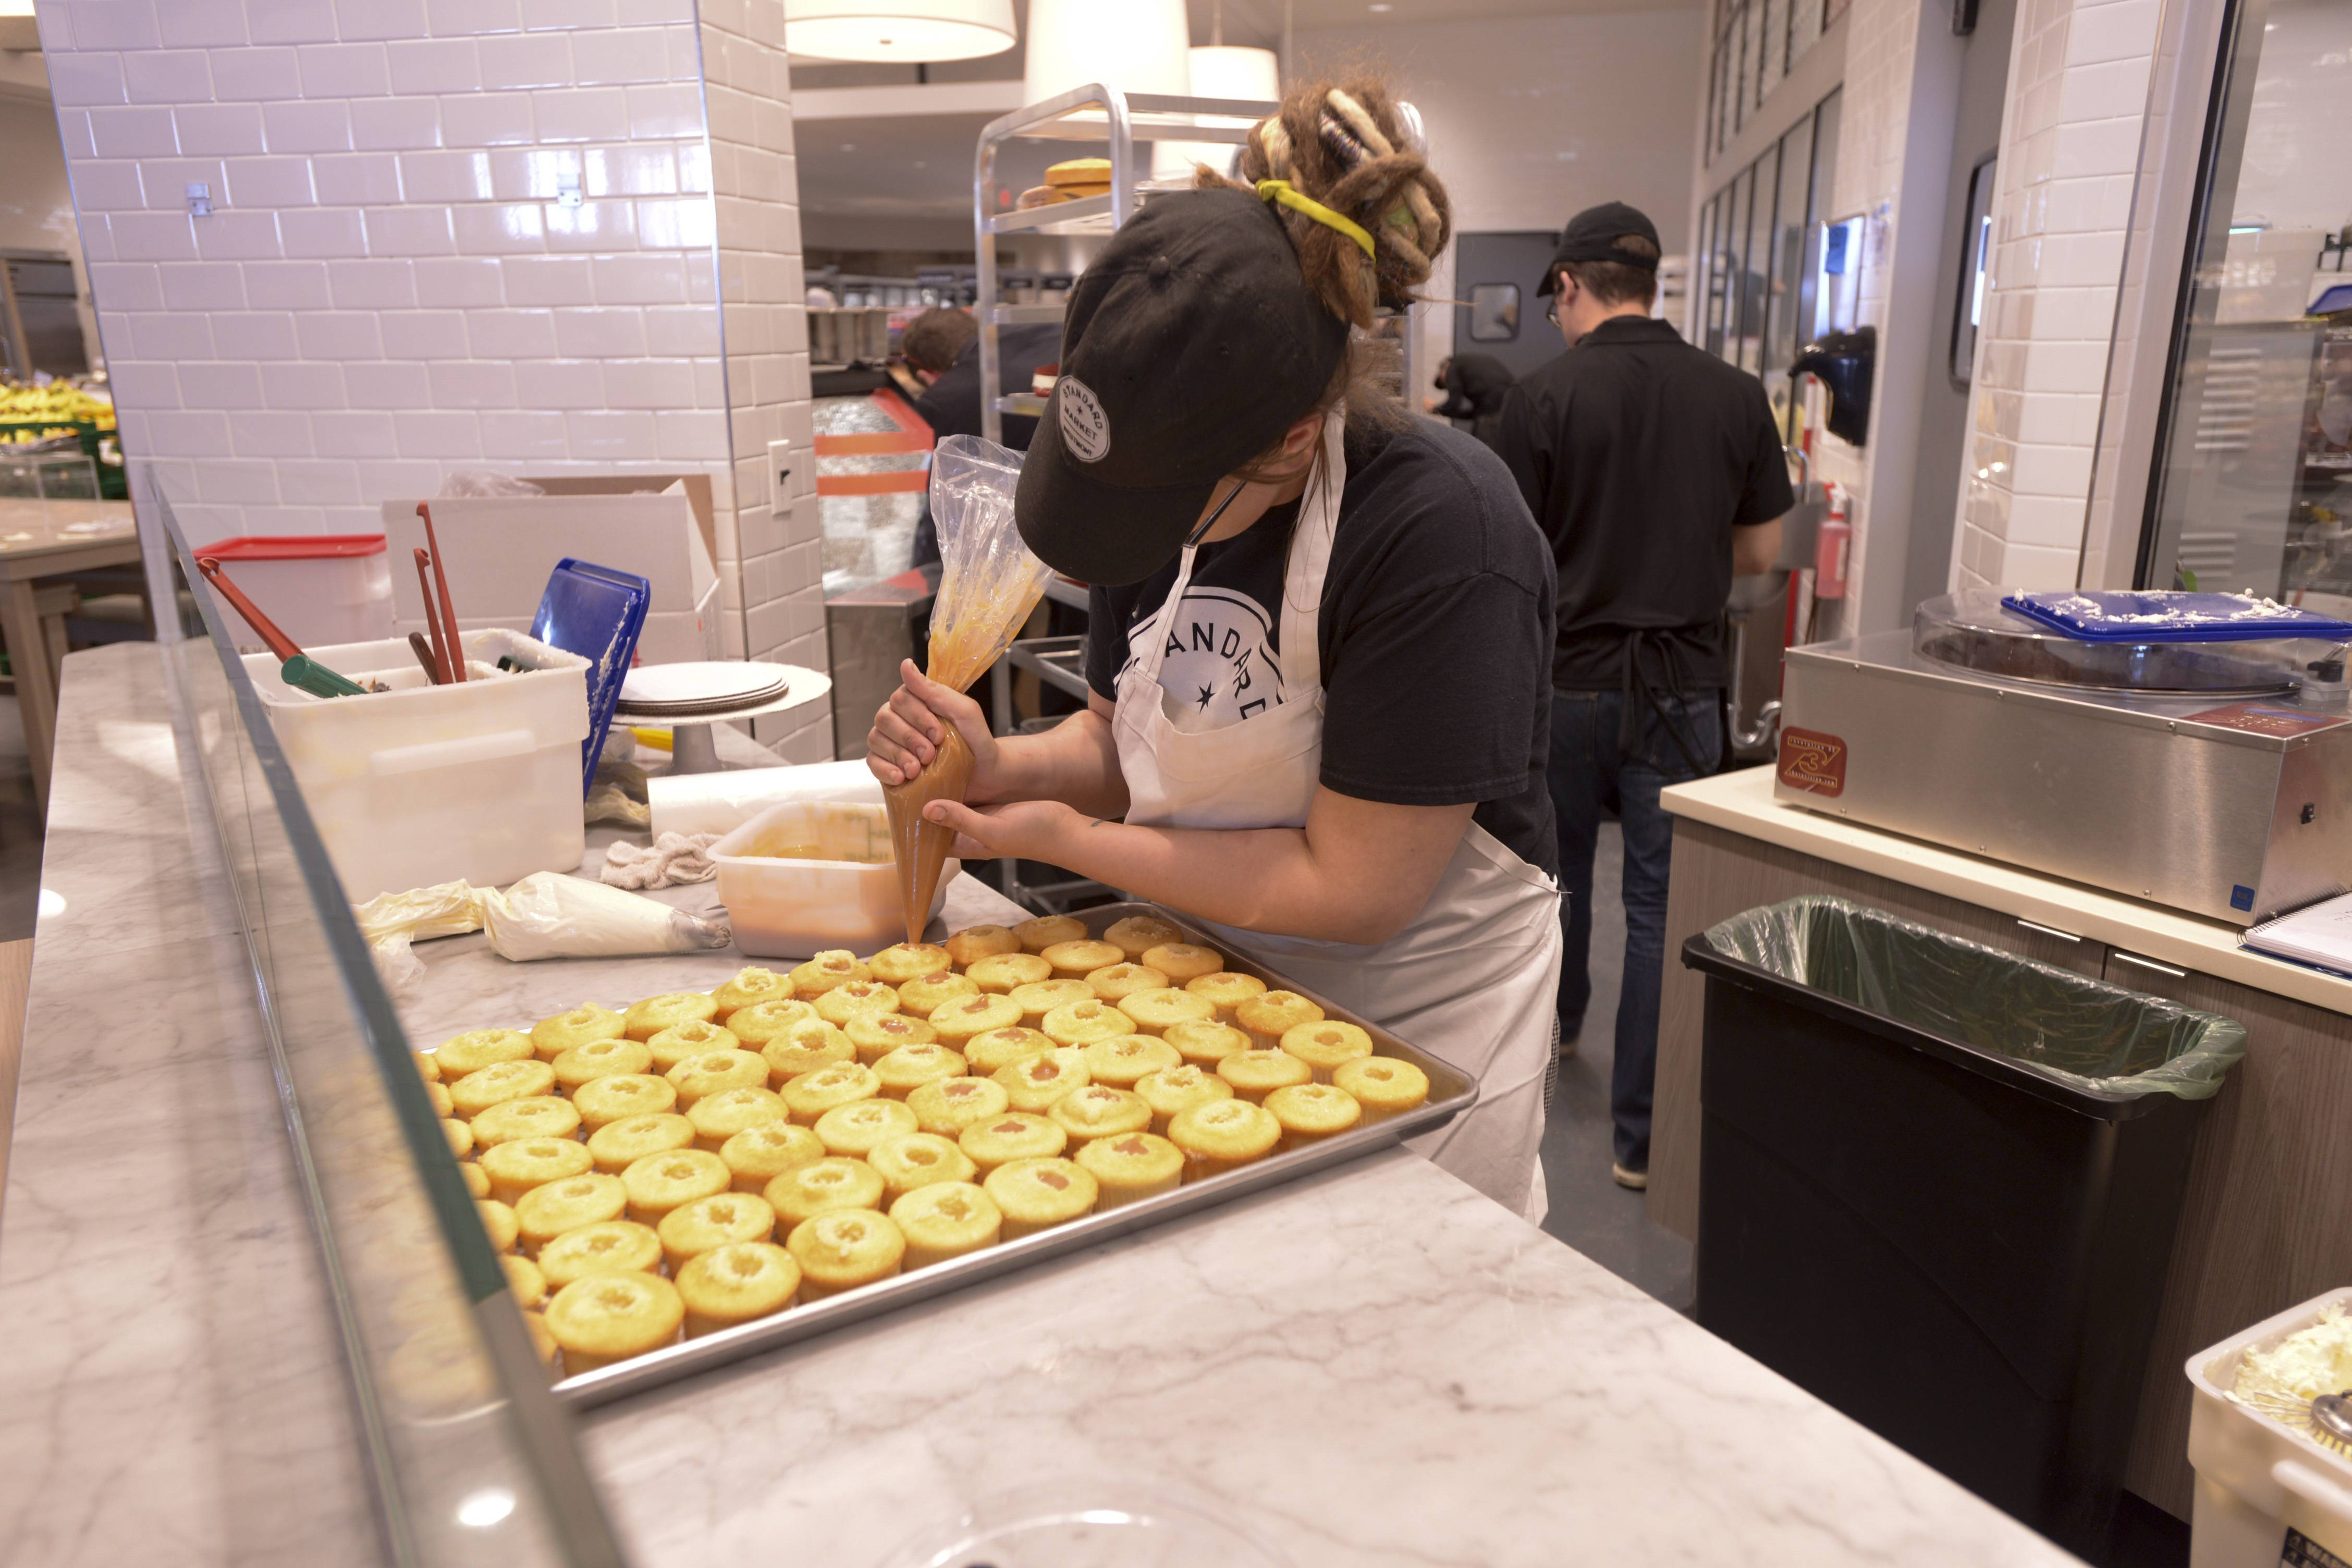 Bakers and pastry chefs at Standard Market's new store in Naperville make most items from scratch in a kitchen behind wide windows so customers can see them at work. Started in Westmont in 2011, Standard Market will open its second location Tuesday at 1508 Aurora Ave. in Naperville.